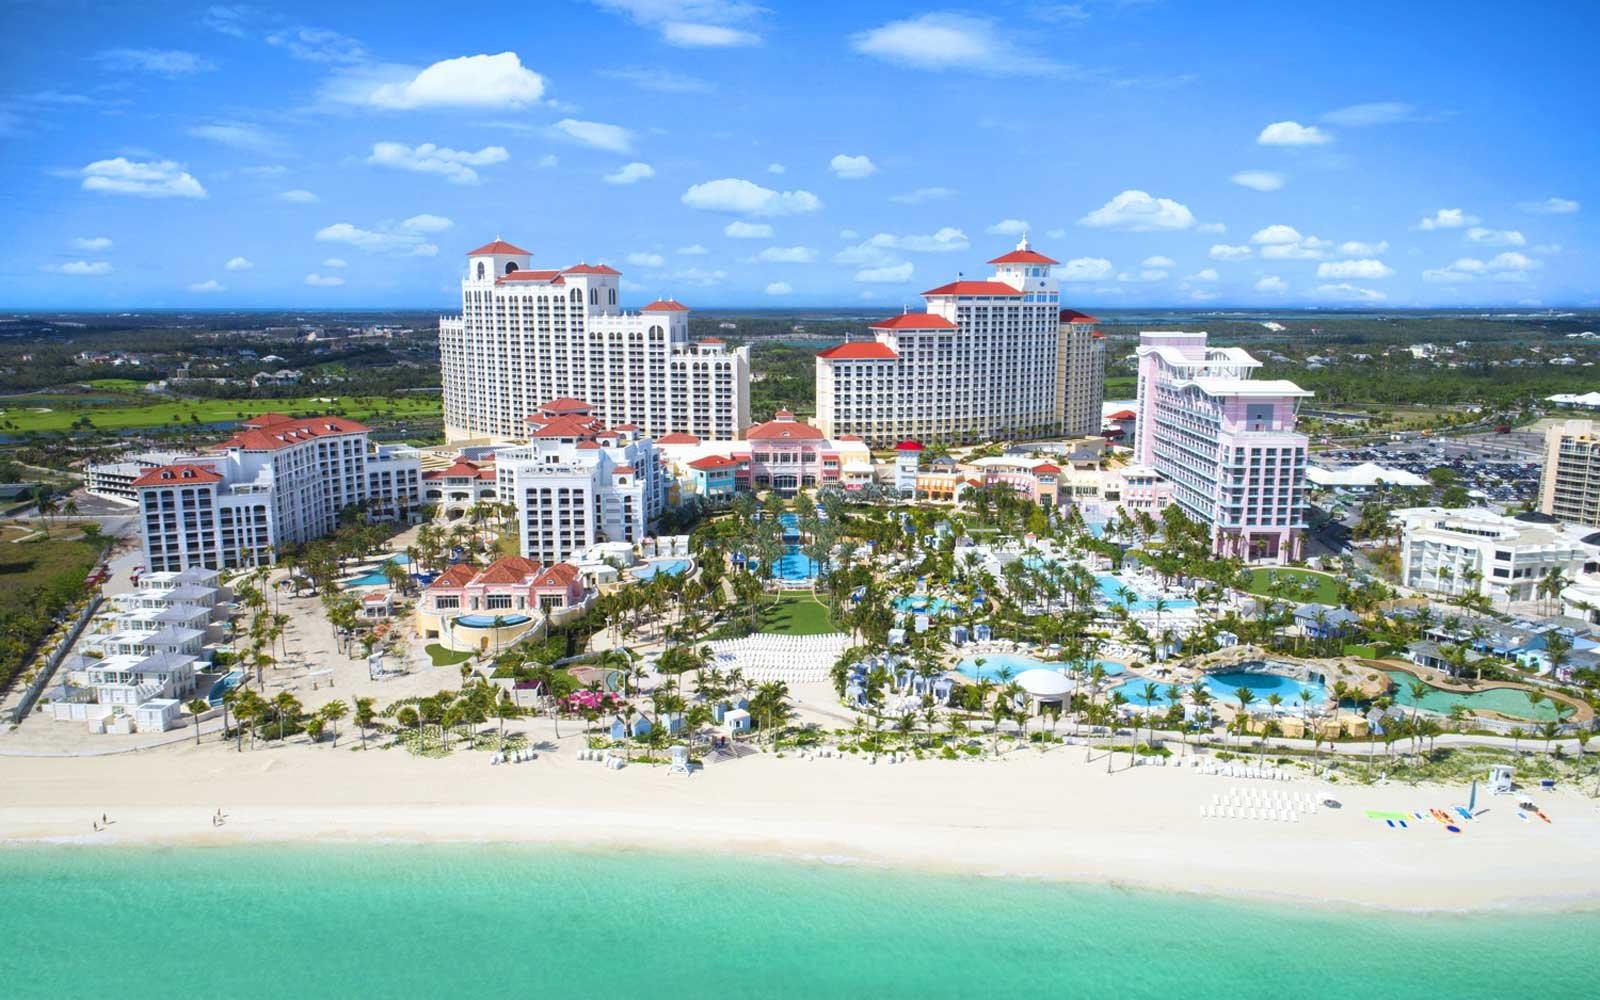 Baha Mar resort in the Bahamas